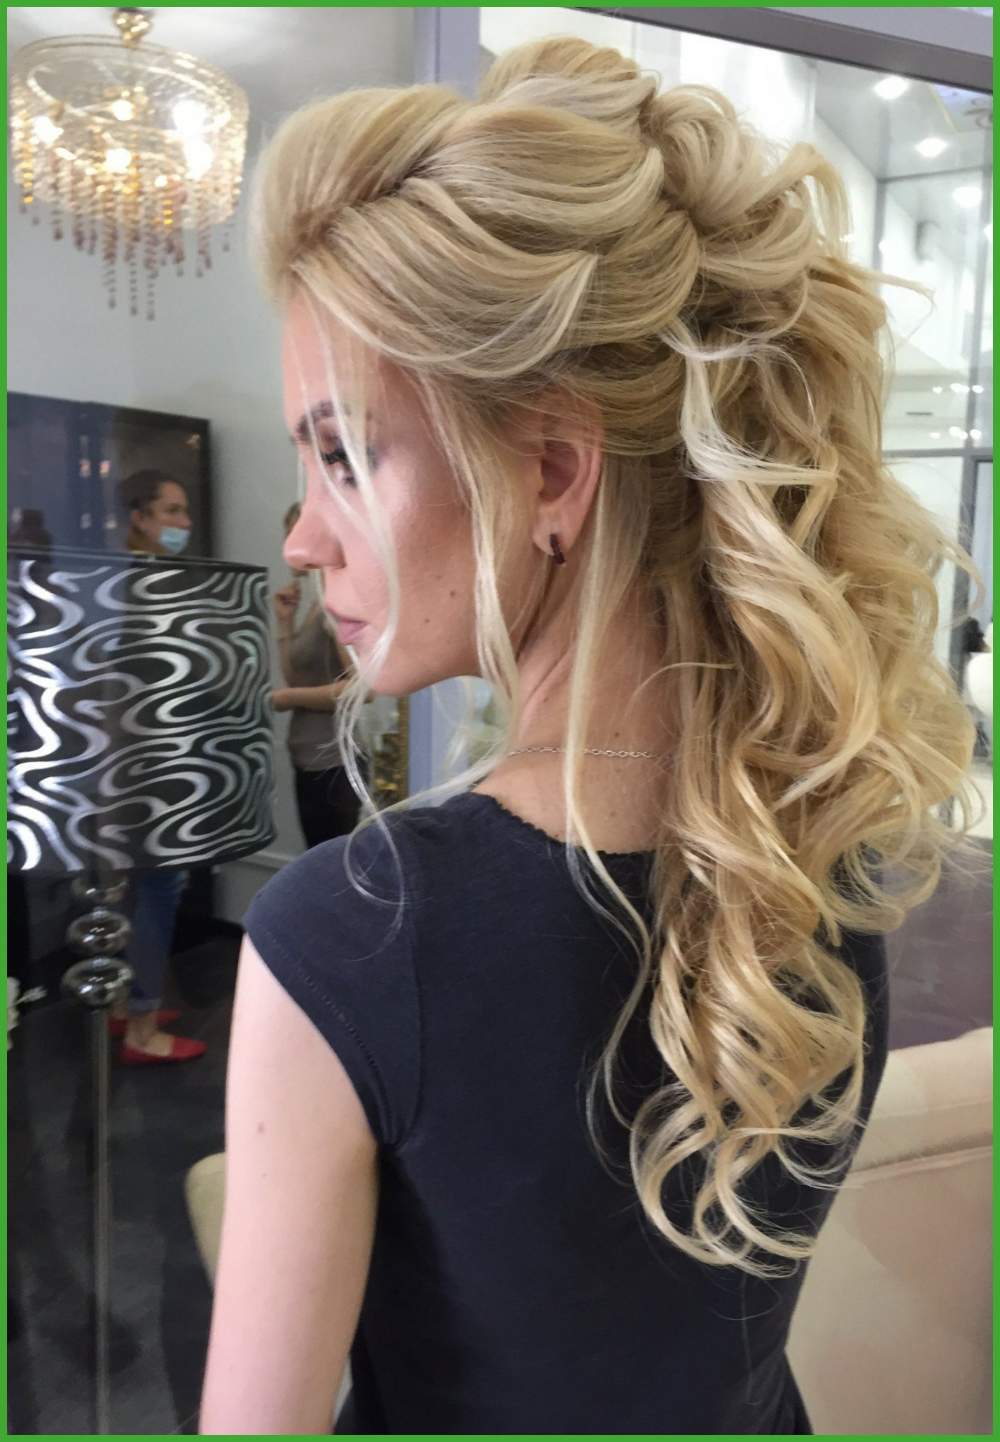 wedding hair down - Google Search (With images) | Formal ...